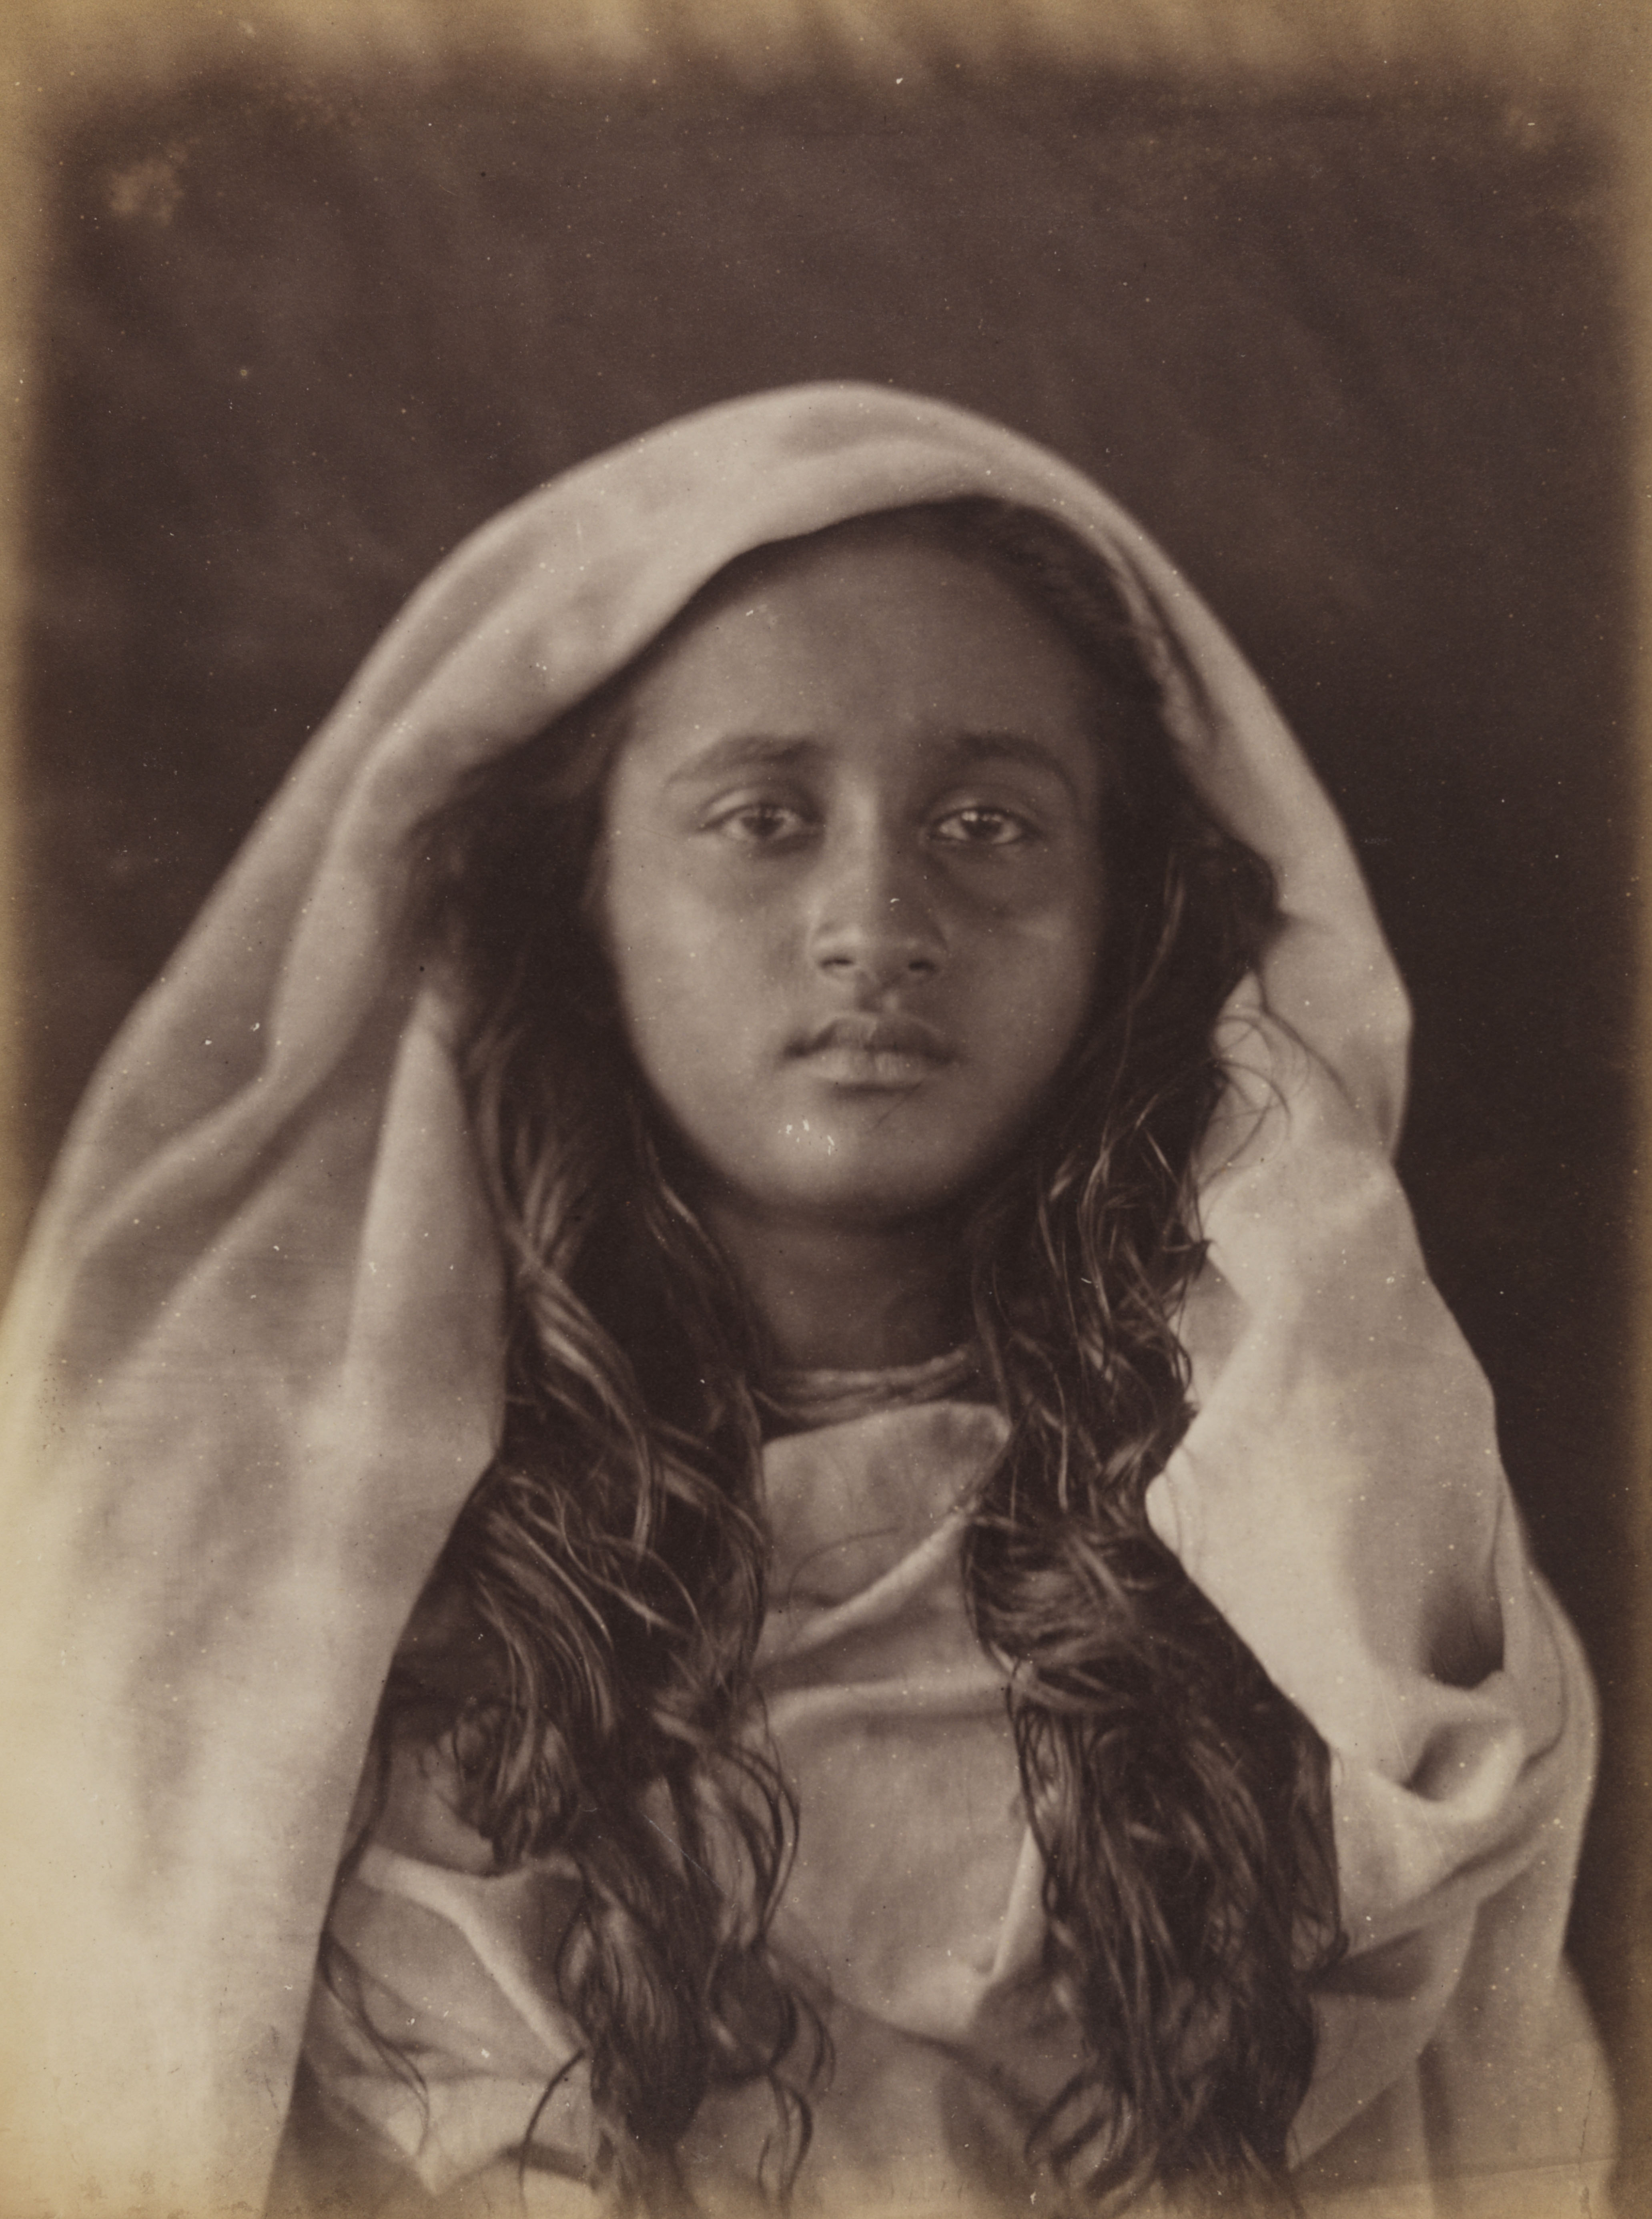 julia margaret cameron Pages in category julia margaret cameron the following 2 pages are in this category, out of 2 total.